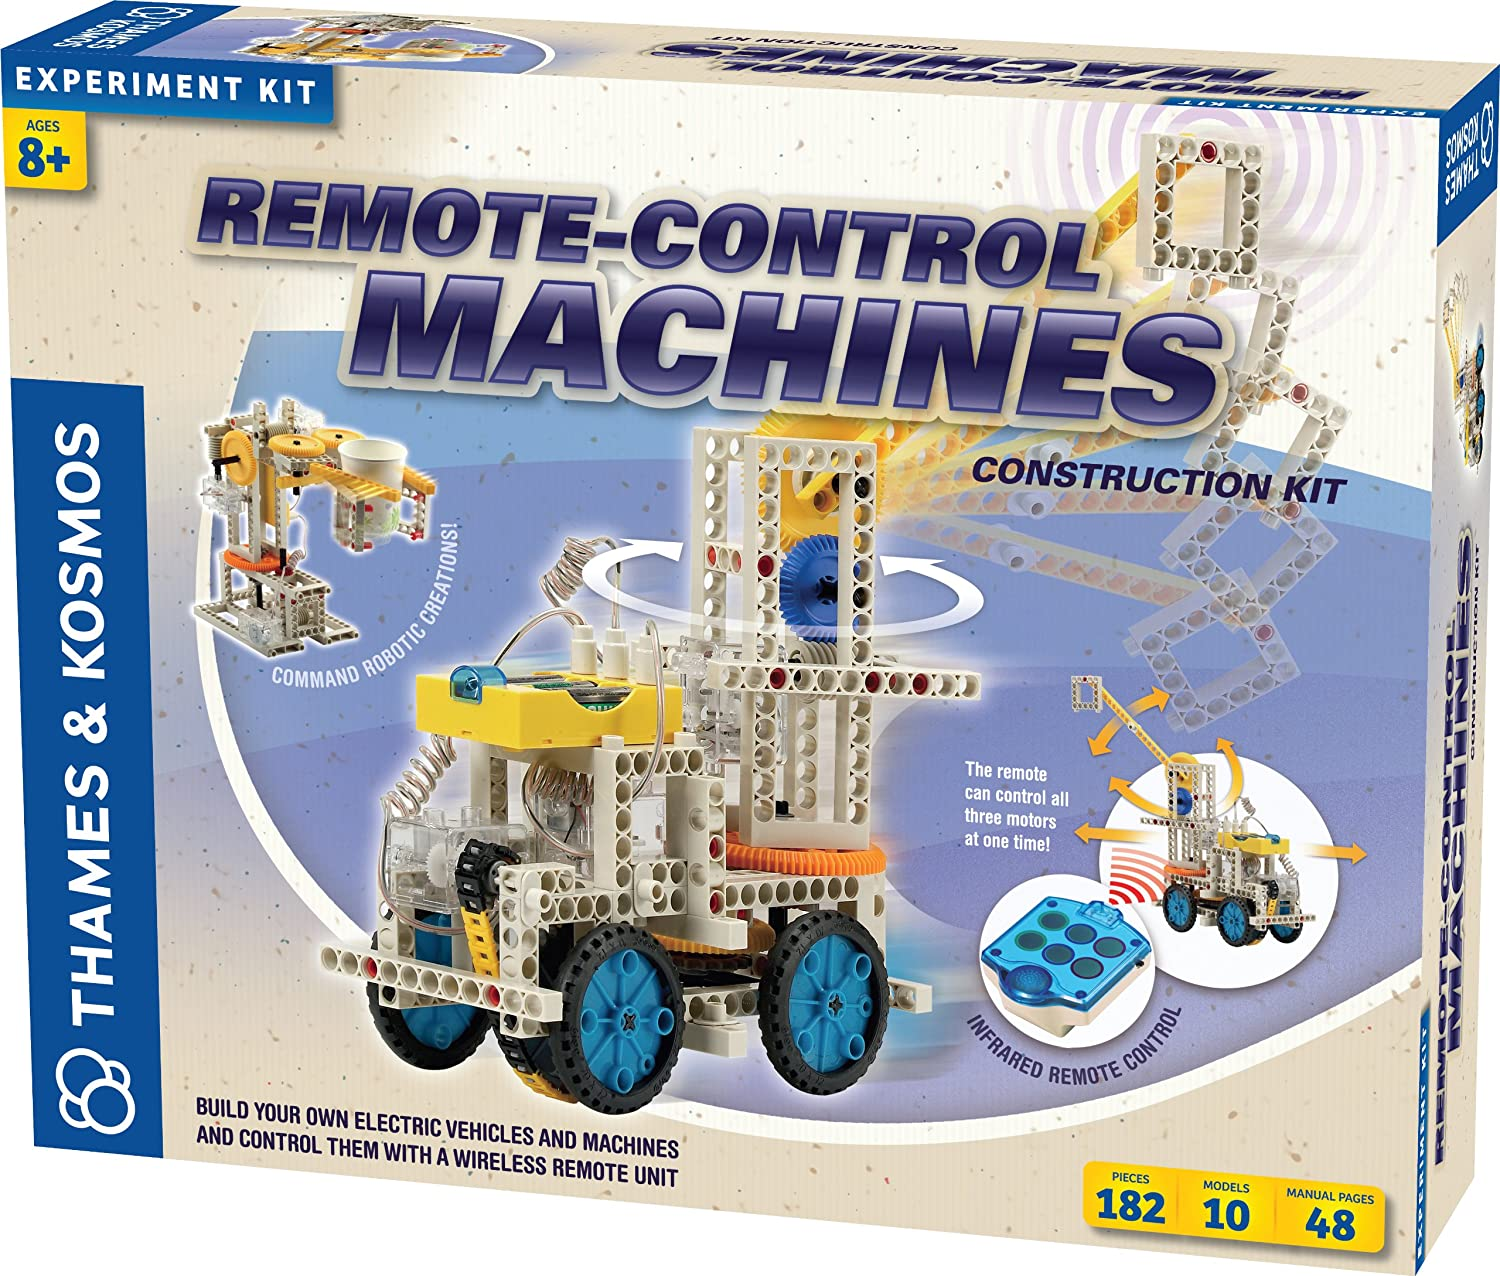 Engineering Toys For Boys : Favorite stem toys for christmas